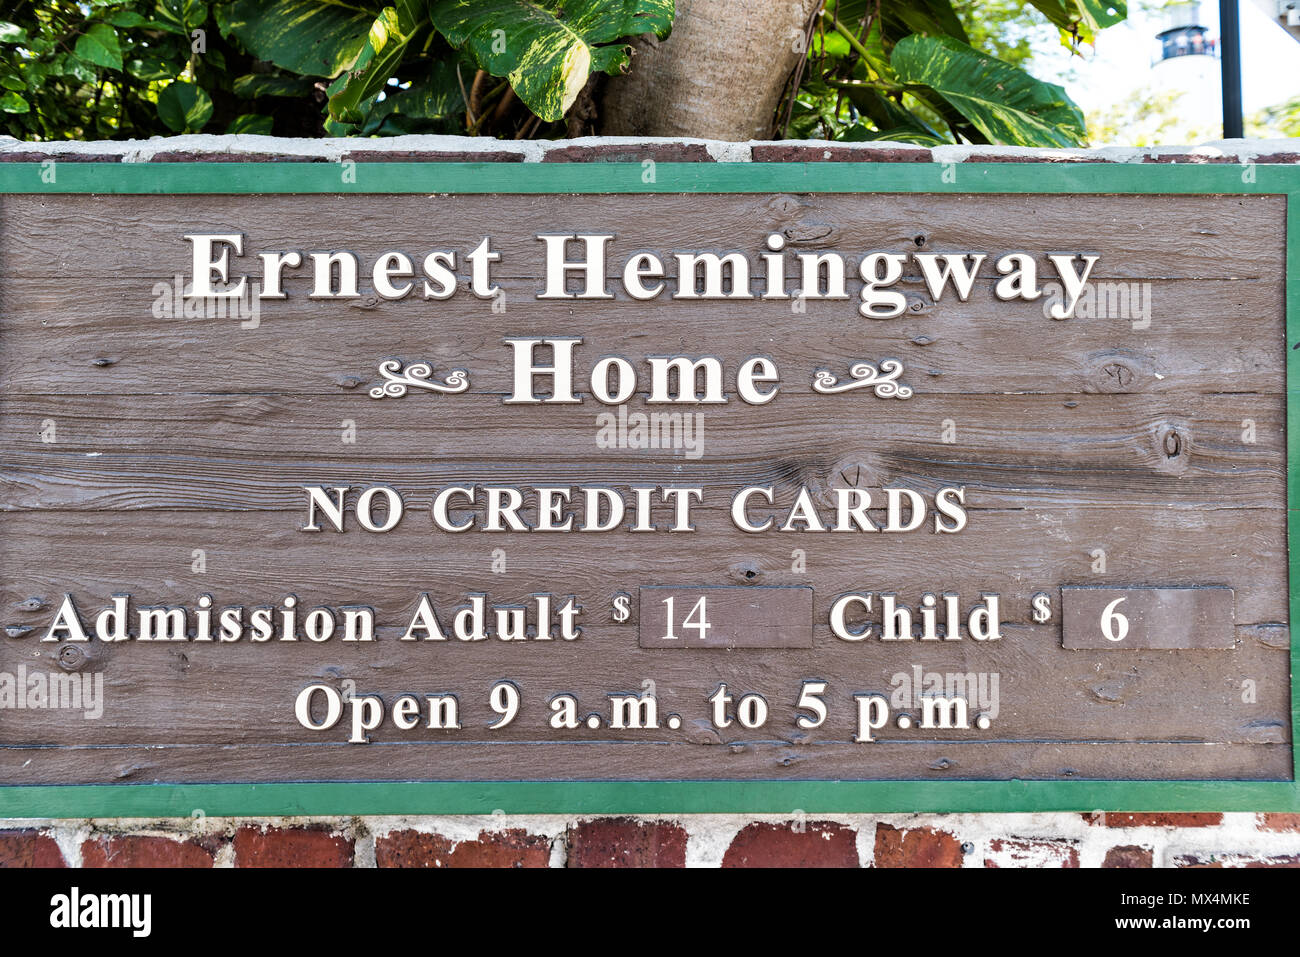 Key West, USA - May 1, 2018: Ernest Hemingway house sign famous entrance with admission costs, no credit cards closeup in Florida island Stock Photo